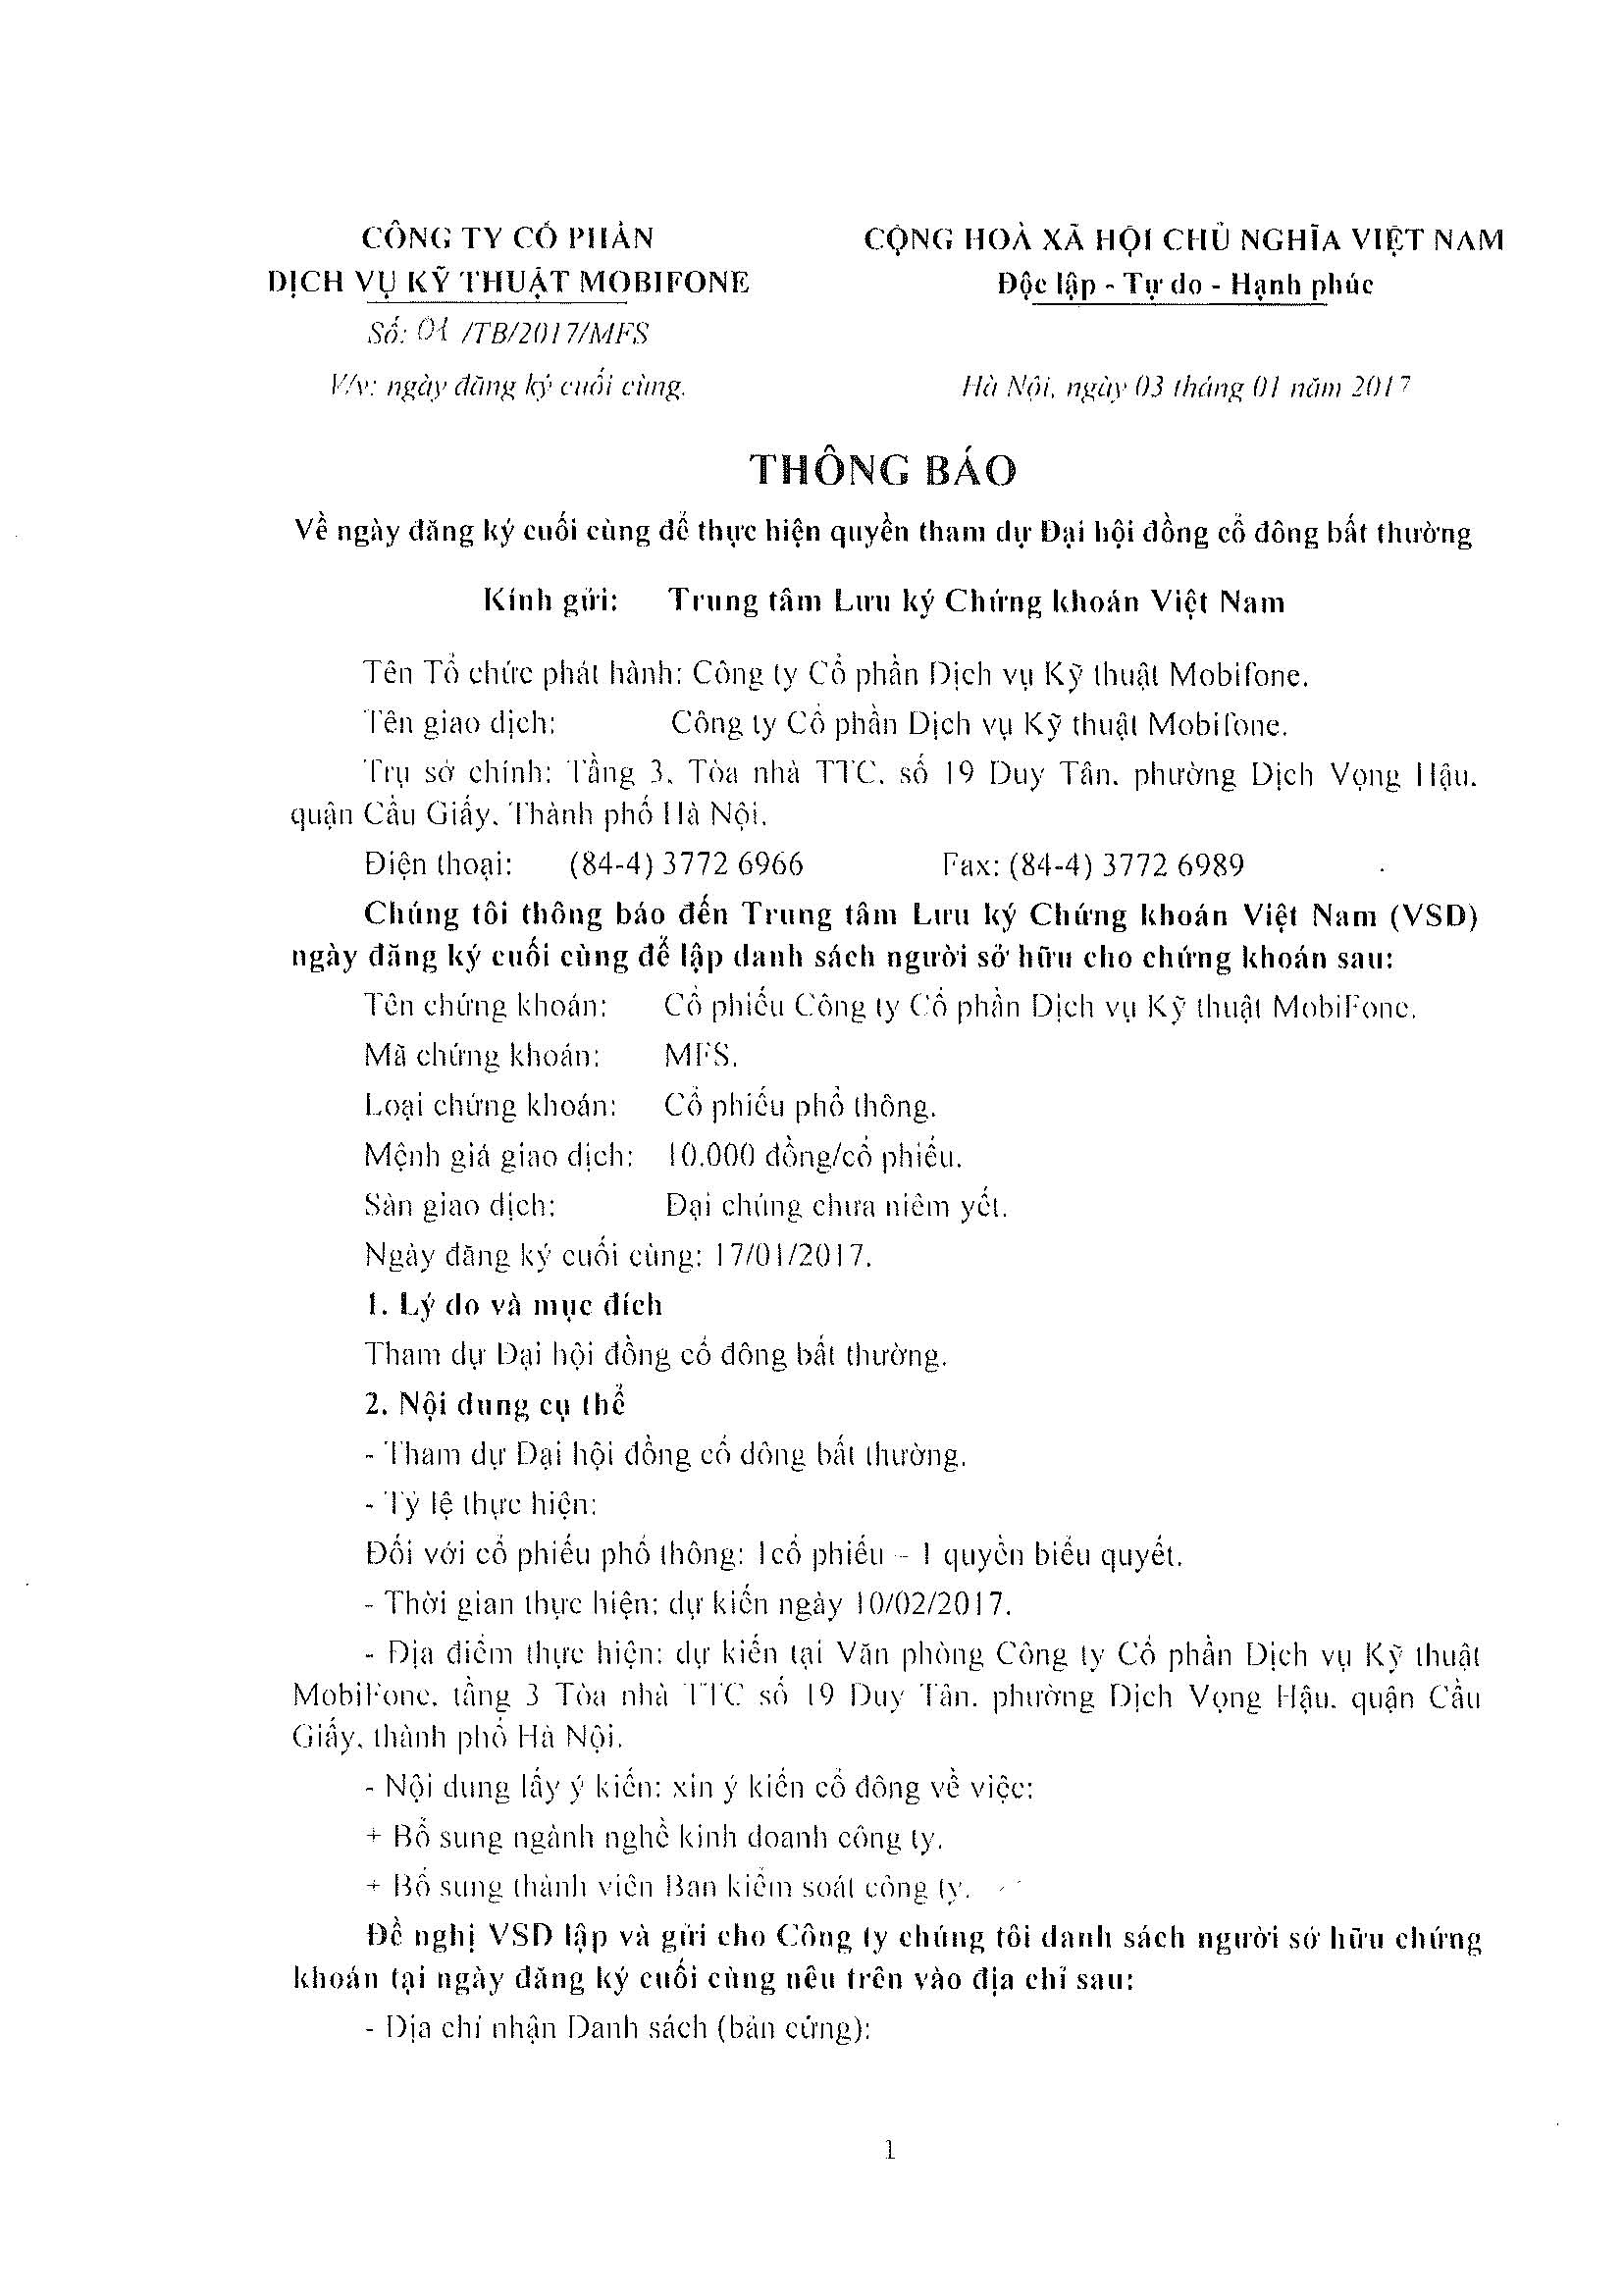 tb-01-ngay-dang-ky-cuoi-cung_page_1